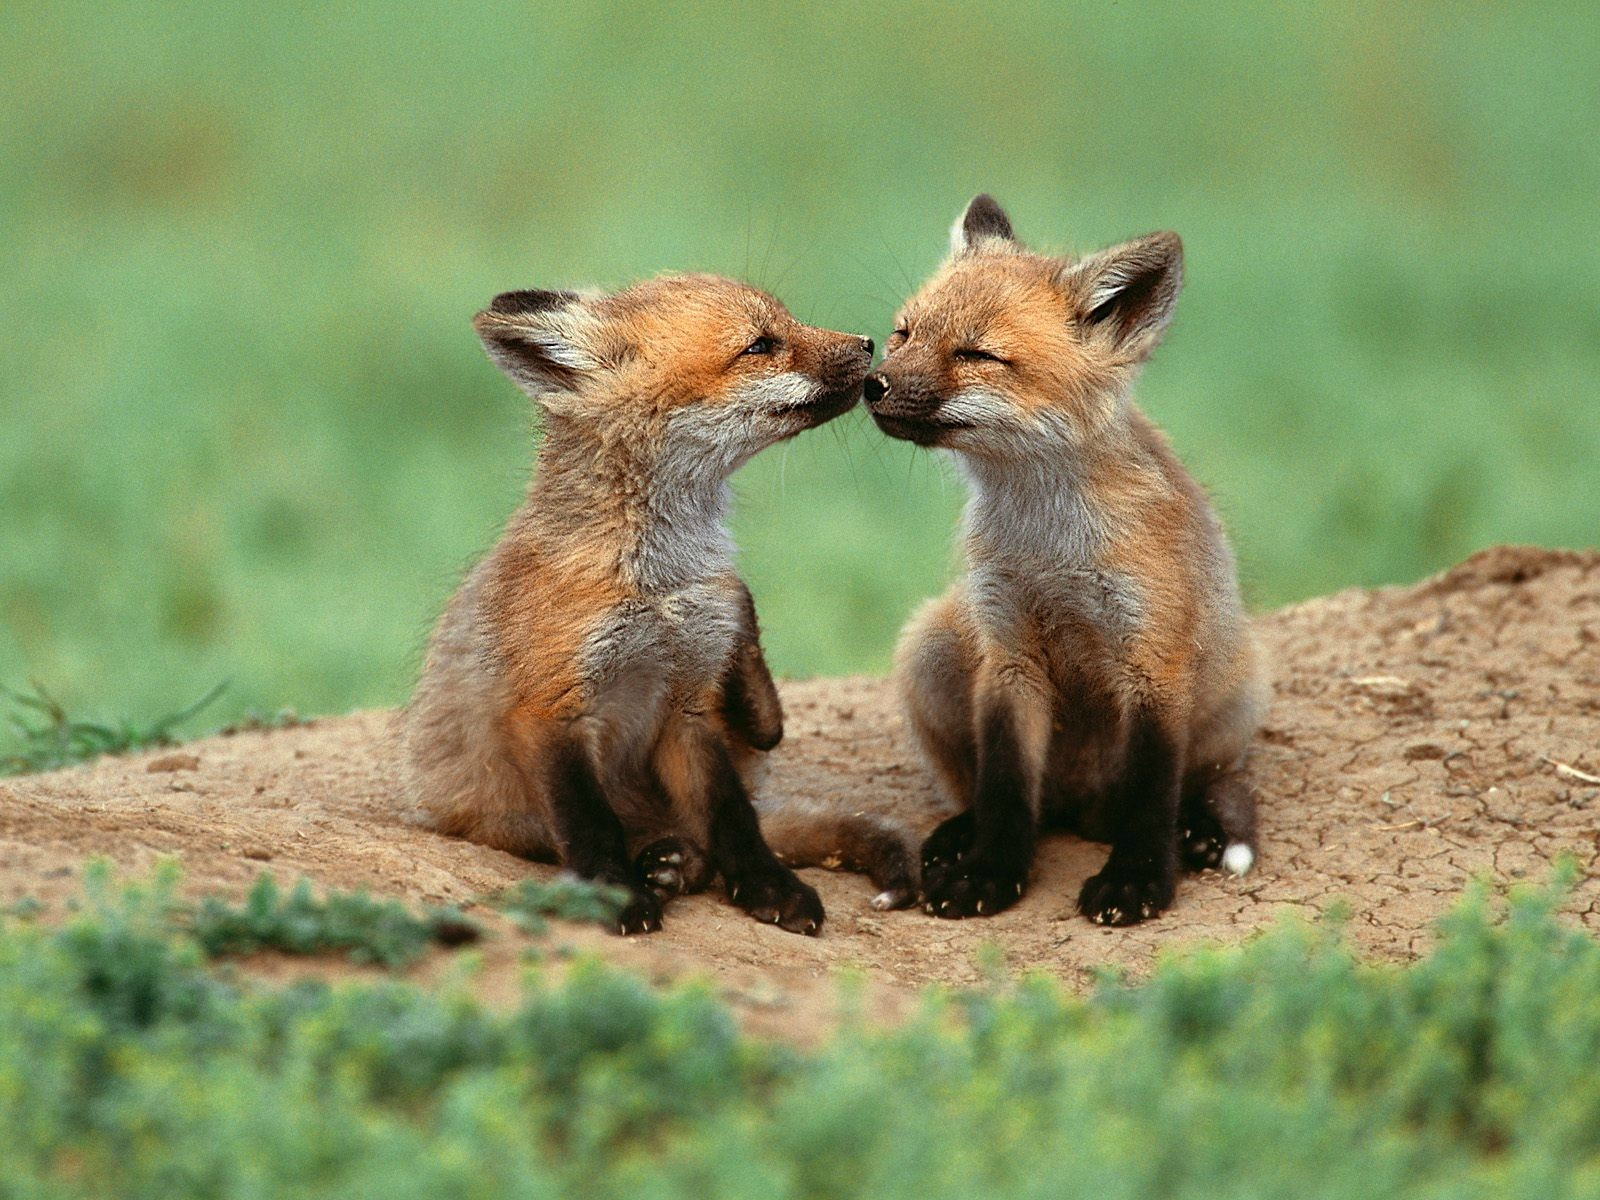 Just some adorable fox PDA.